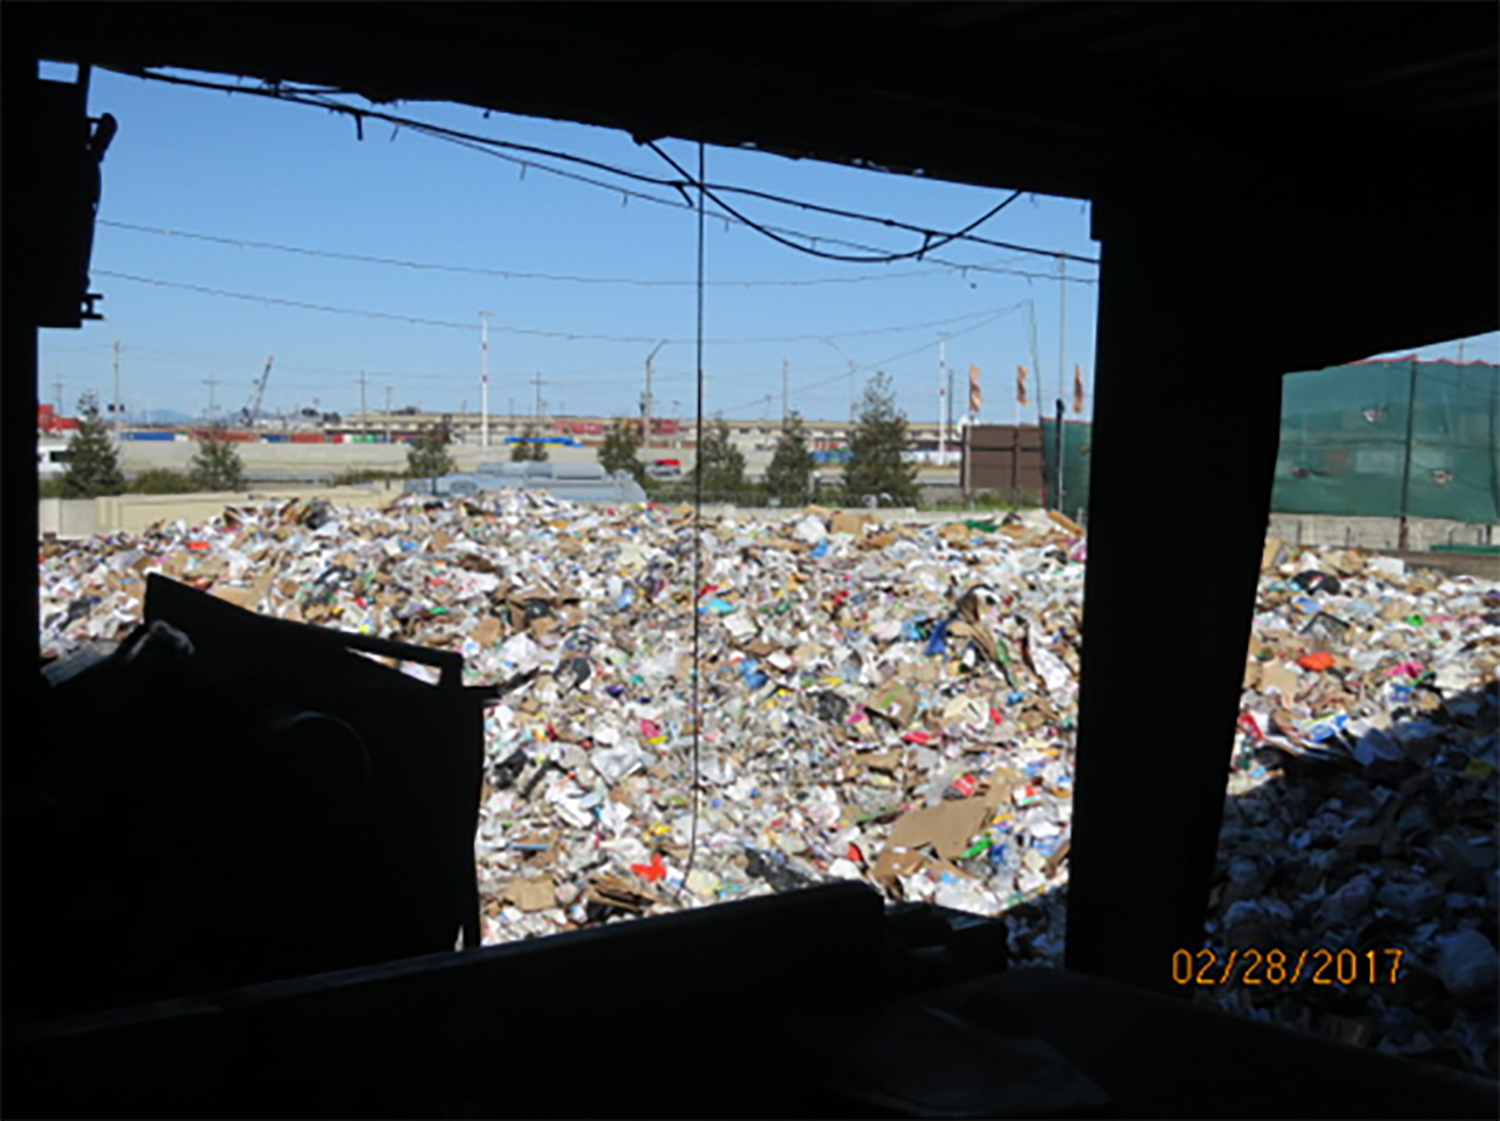 California Waste Solutions 10th Street facility during a Feb. 28, 2017, inspection. CalRecycle photo.